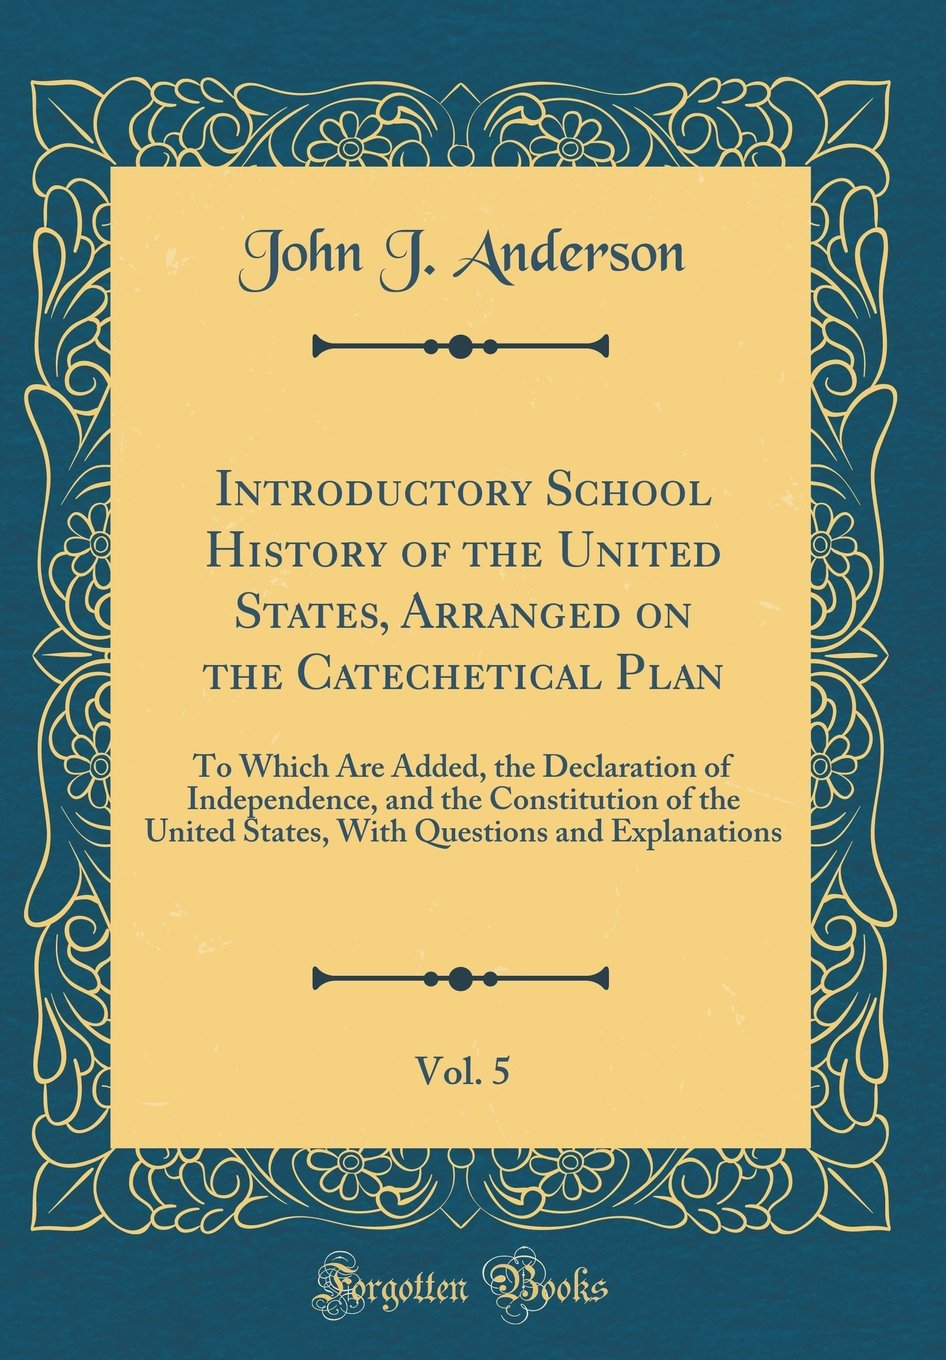 Download Introductory School History of the United States, Arranged on the Catechetical Plan, Vol. 5: To Which Are Added, the Declaration of Independence, and ... Questions and Explanations (Classic Reprint) pdf